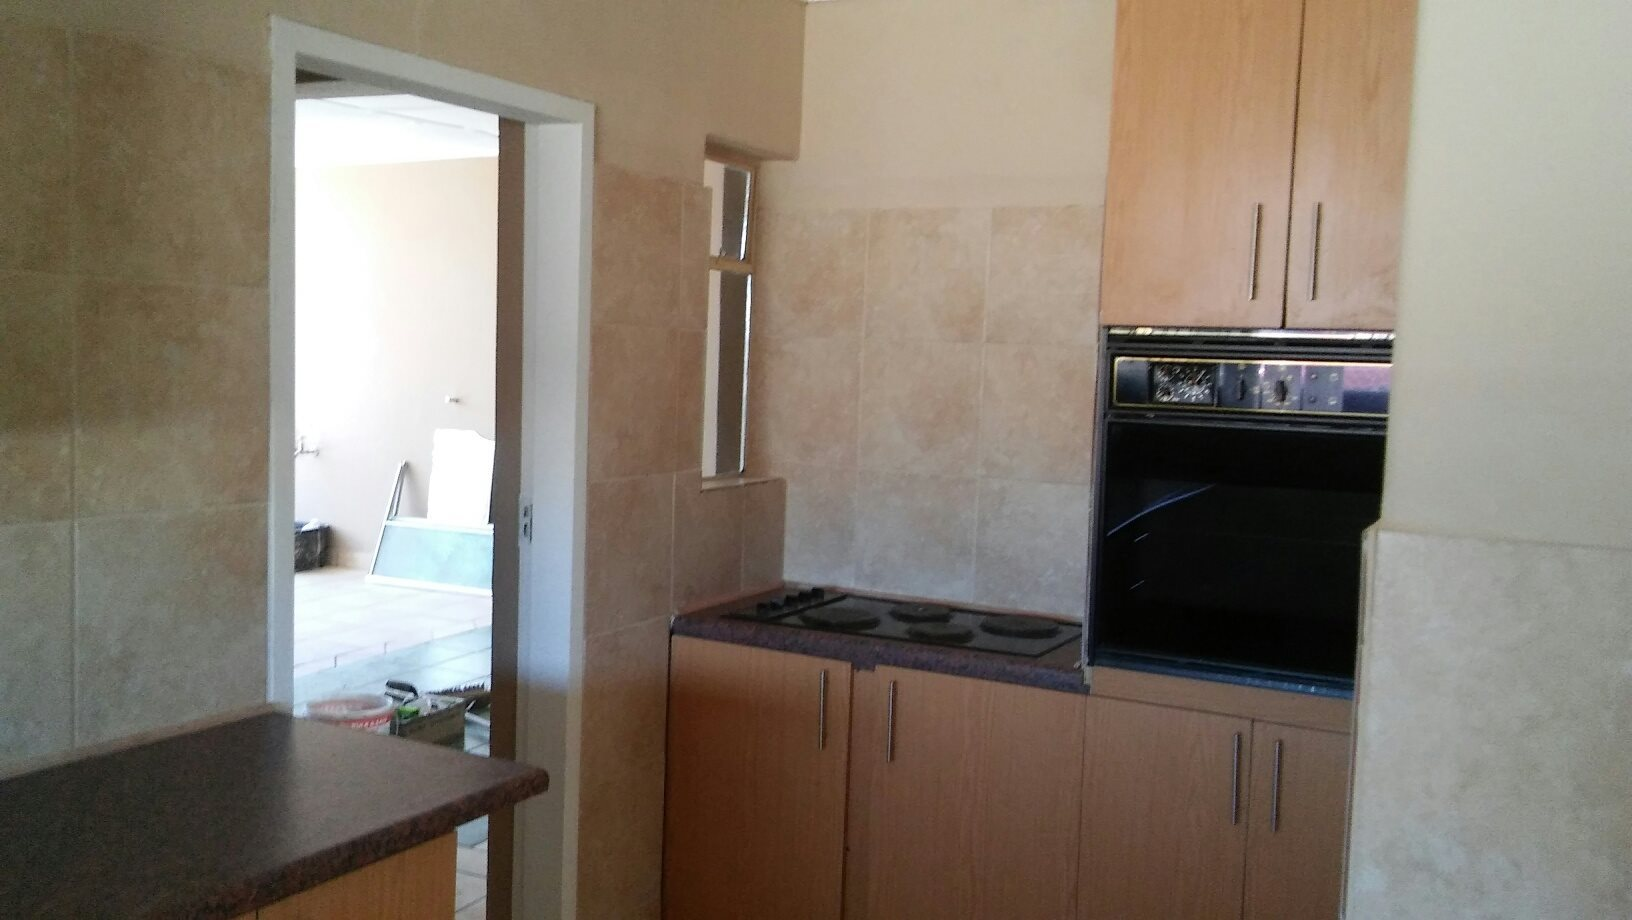 Riversdale property for sale. Ref No: 13528106. Picture no 4